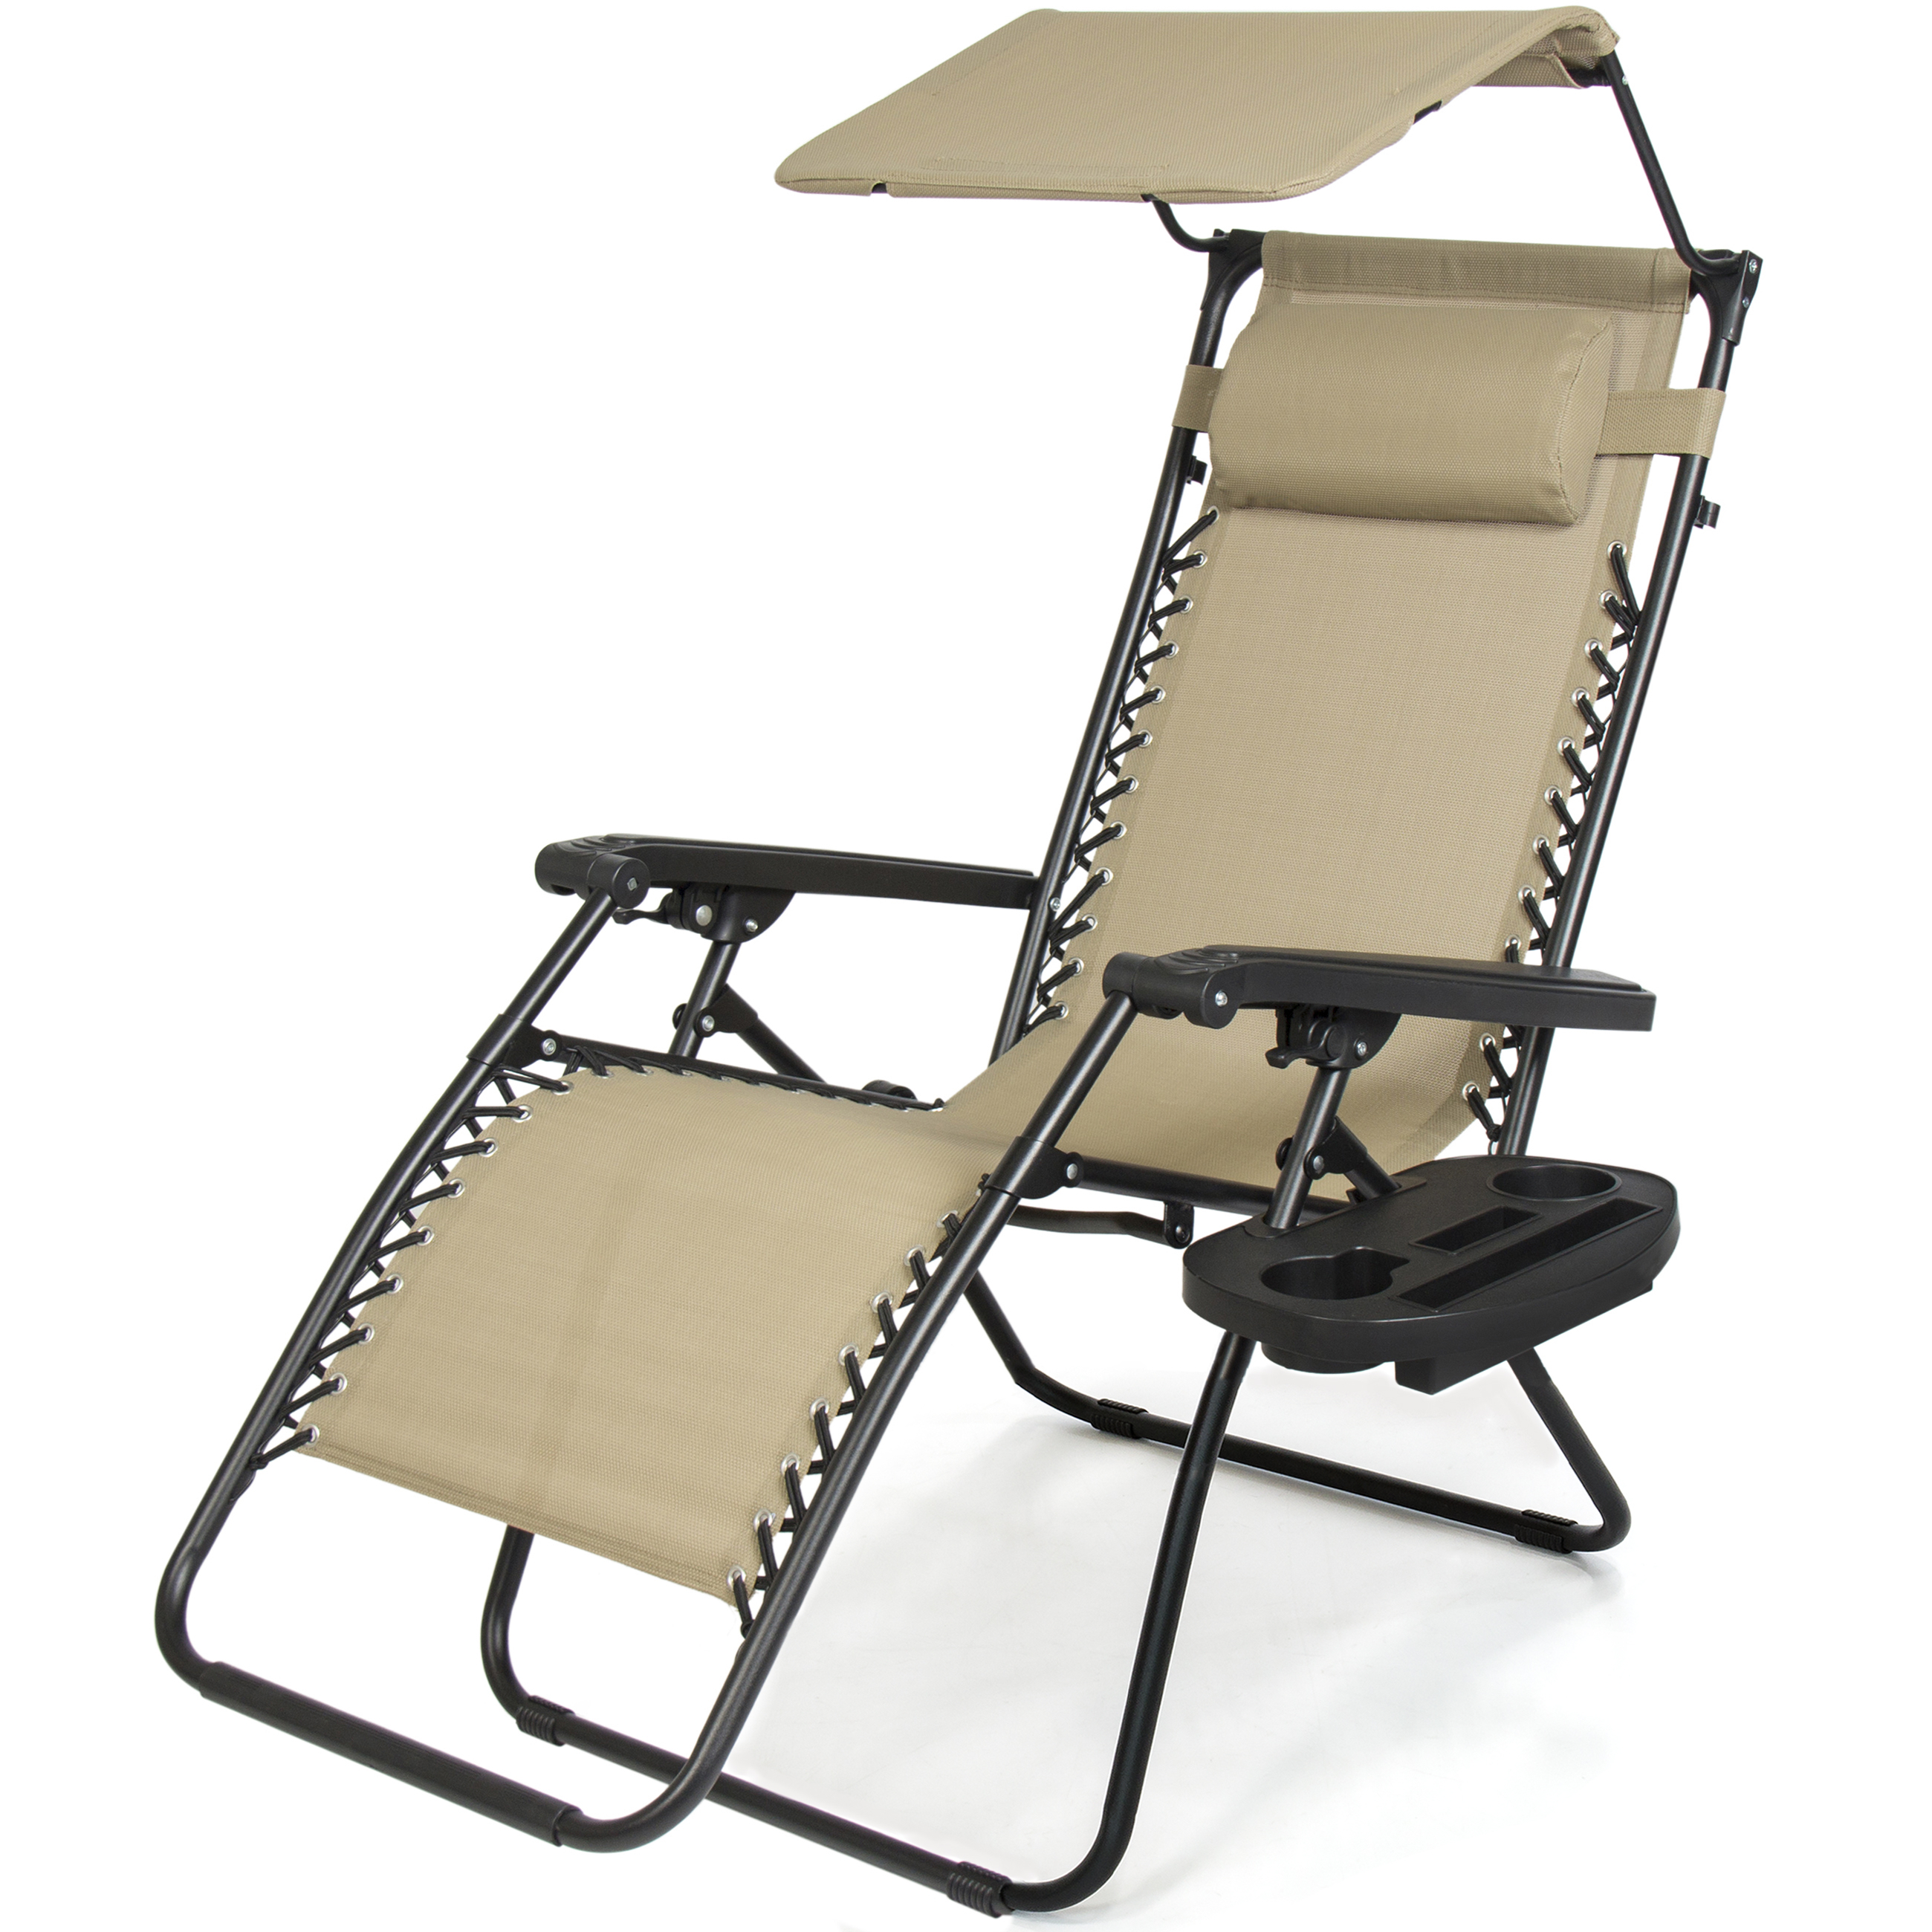 Deluxe Padded Chairs With Canopy And Tray Regarding Trendy Best Choice Products Folding Steel Mesh Zero Gravity Recliner Lounge Chair W/ Adjustable Canopy Shade And Cup Holder Accessory Tray, Beige – (View 16 of 25)